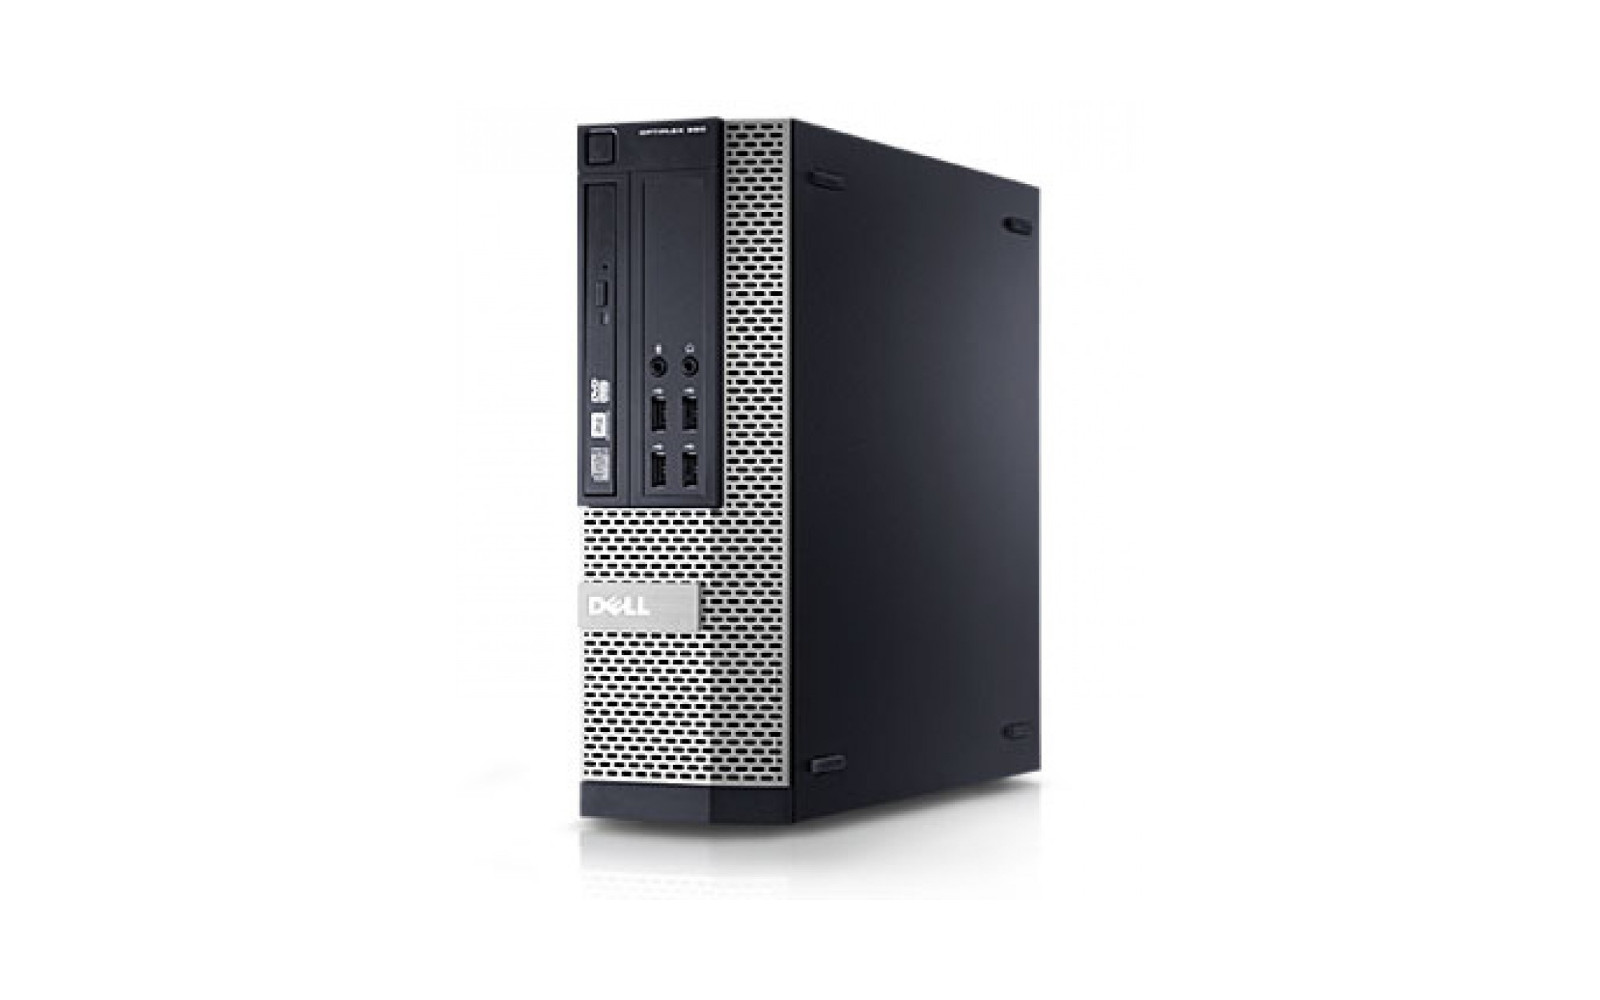 PC Dell OptiPlex 790 SFF i5-2500S 4 GB 250 HDD W7Pro A